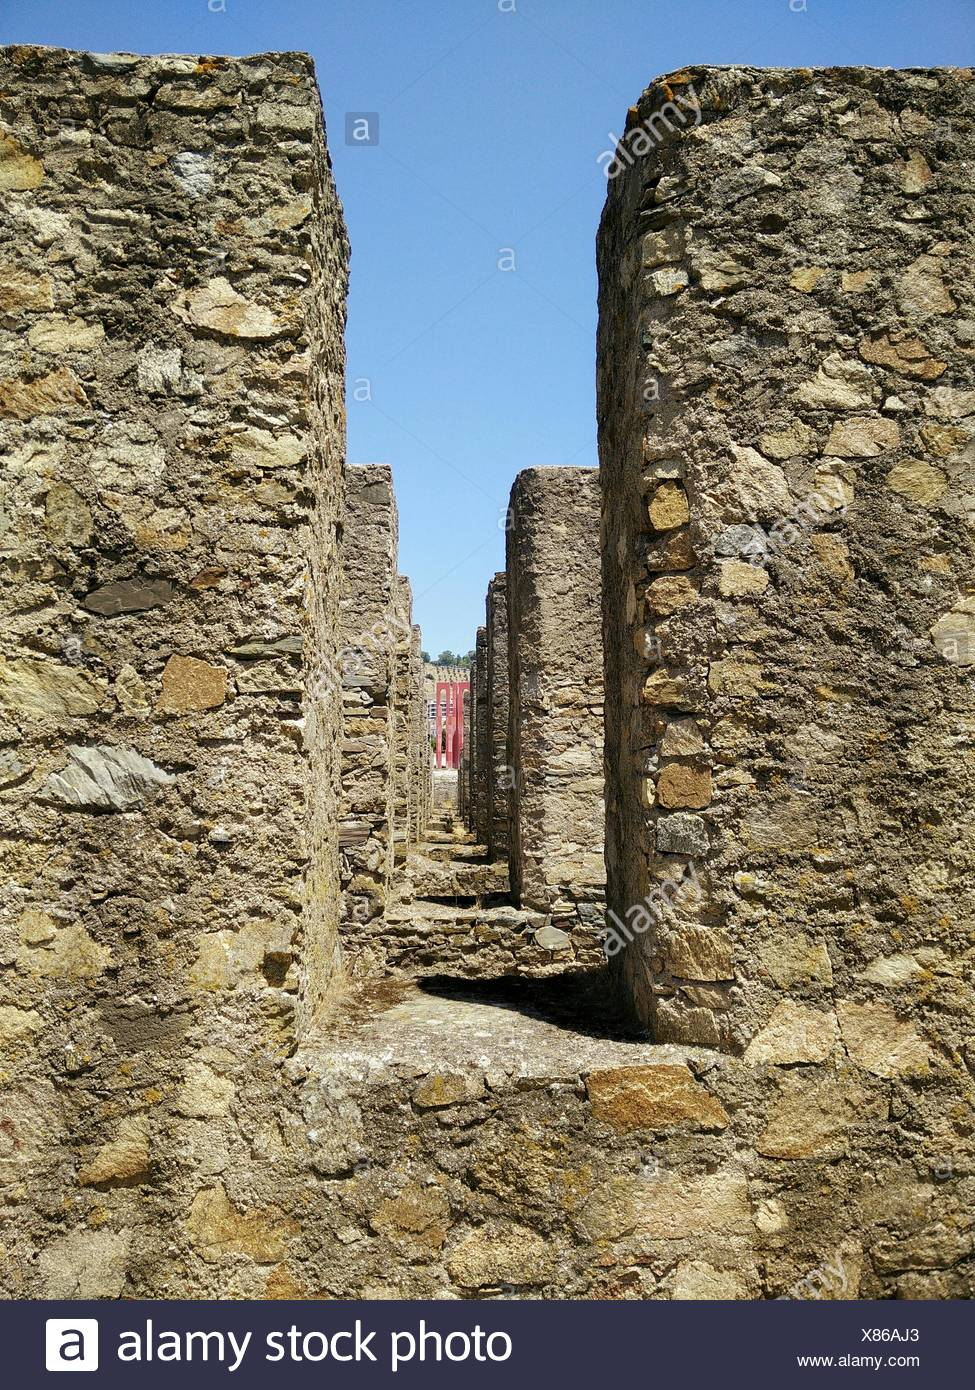 Old Fortified Wall - Stock Image